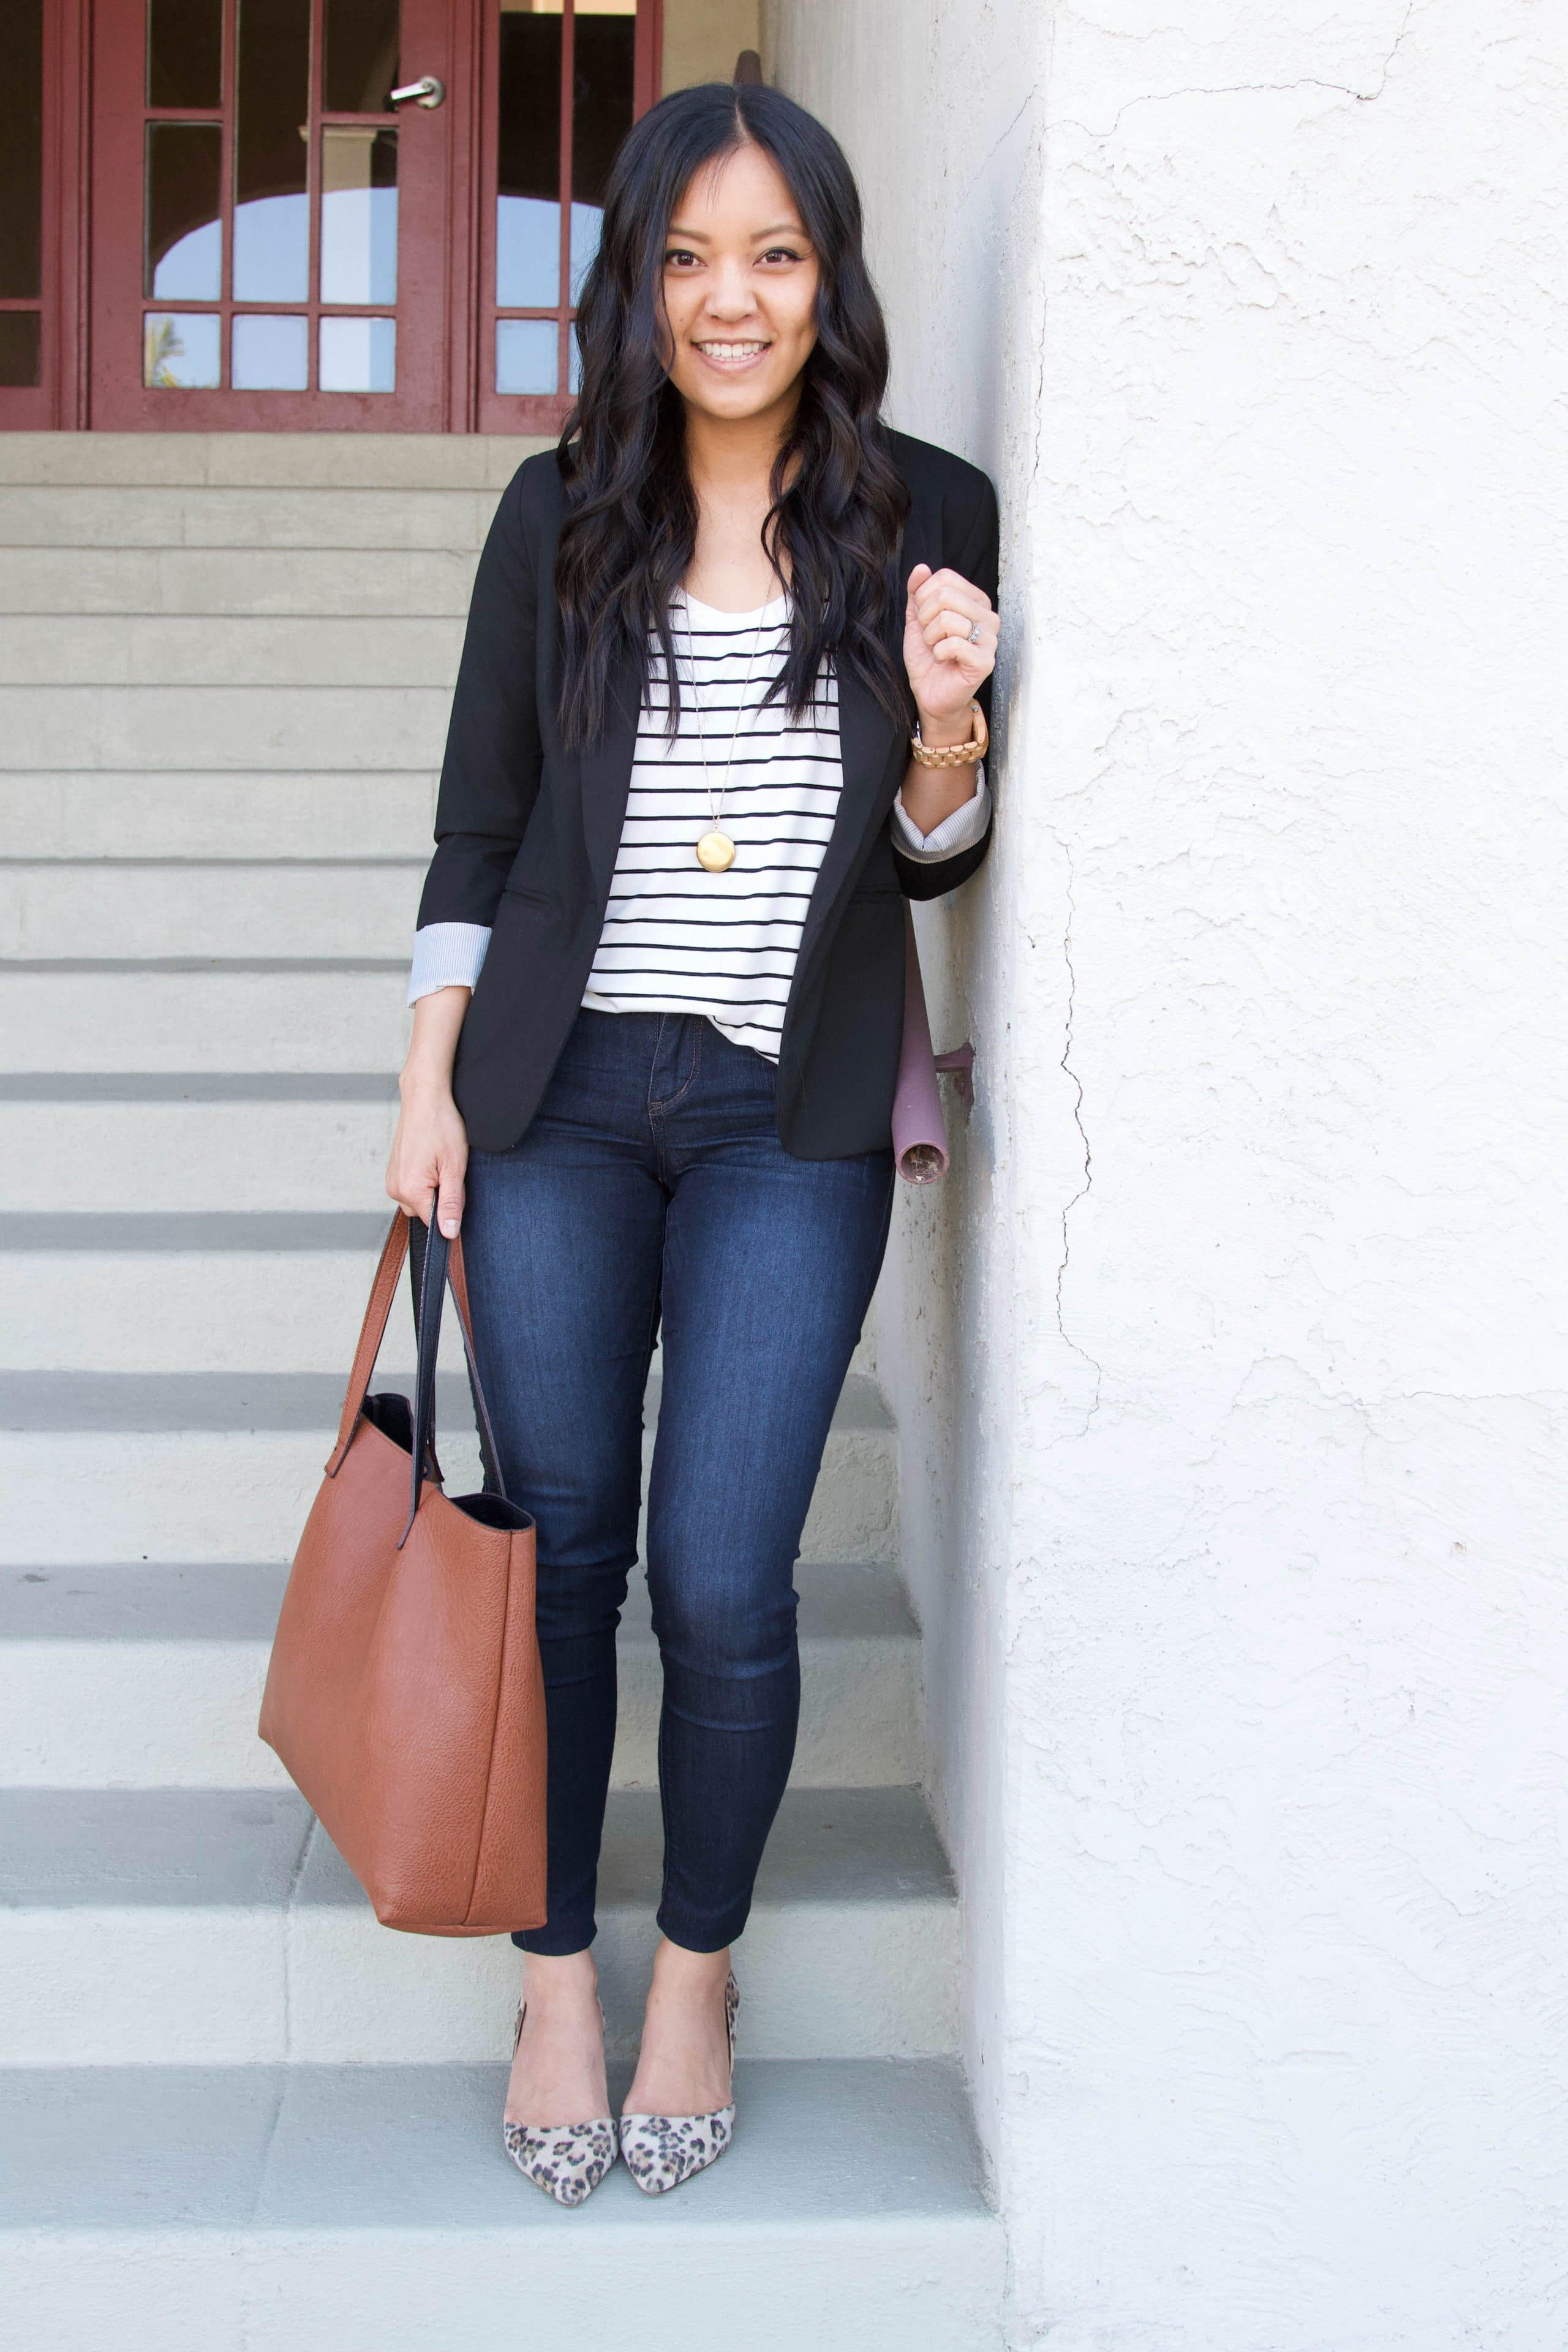 black twill blazer + striped tee + skinny jeans + leopard print flats + brown tote